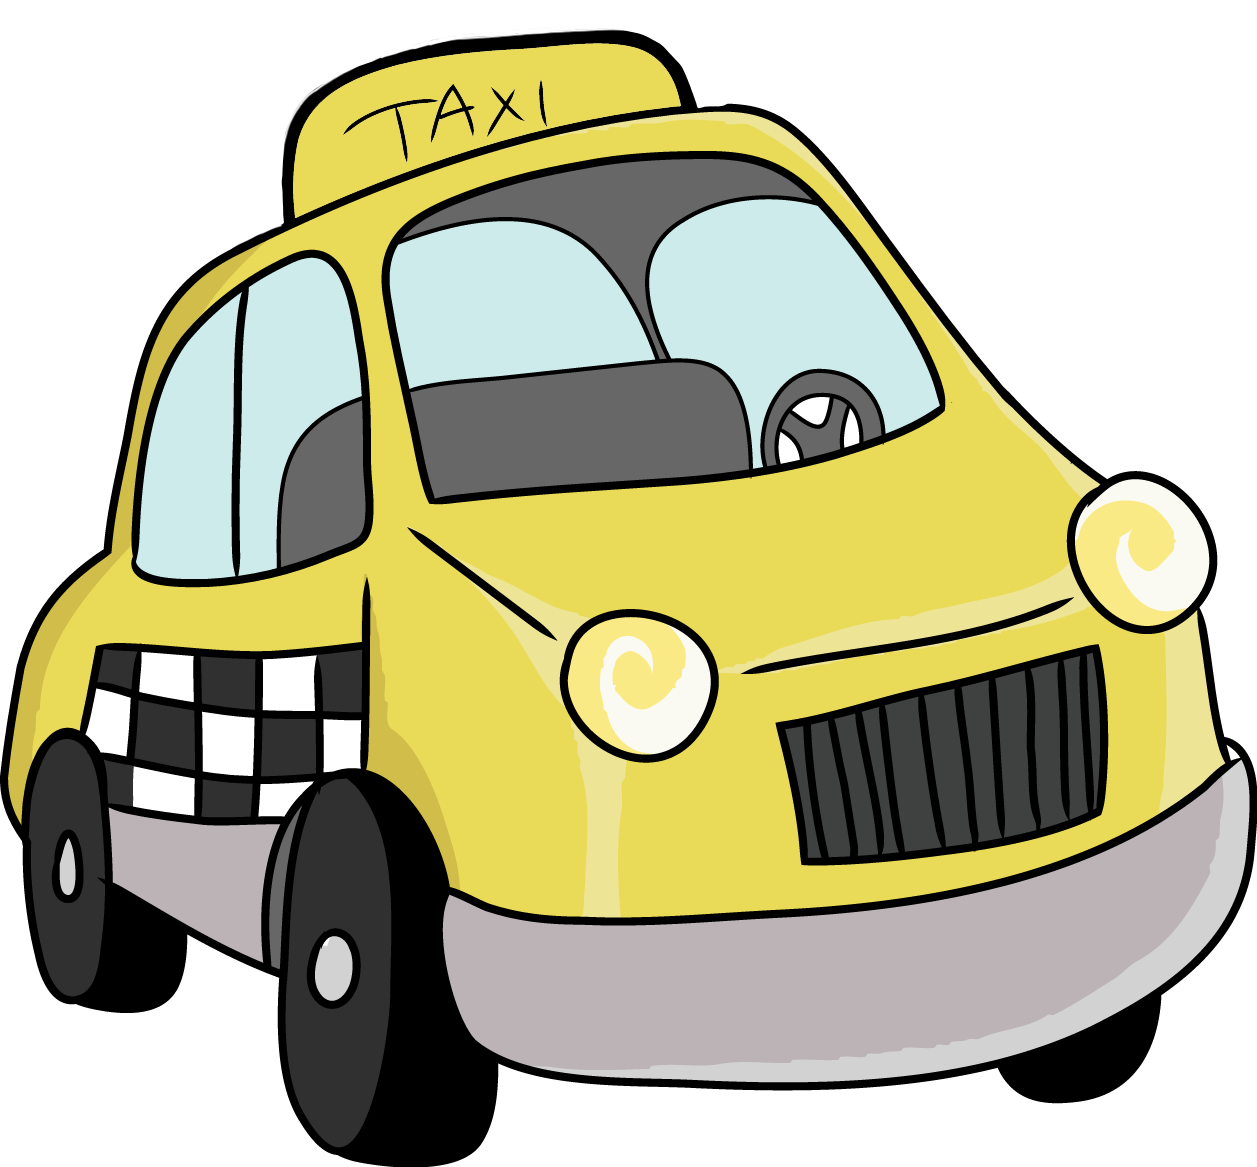 Toy clipart taxi #2